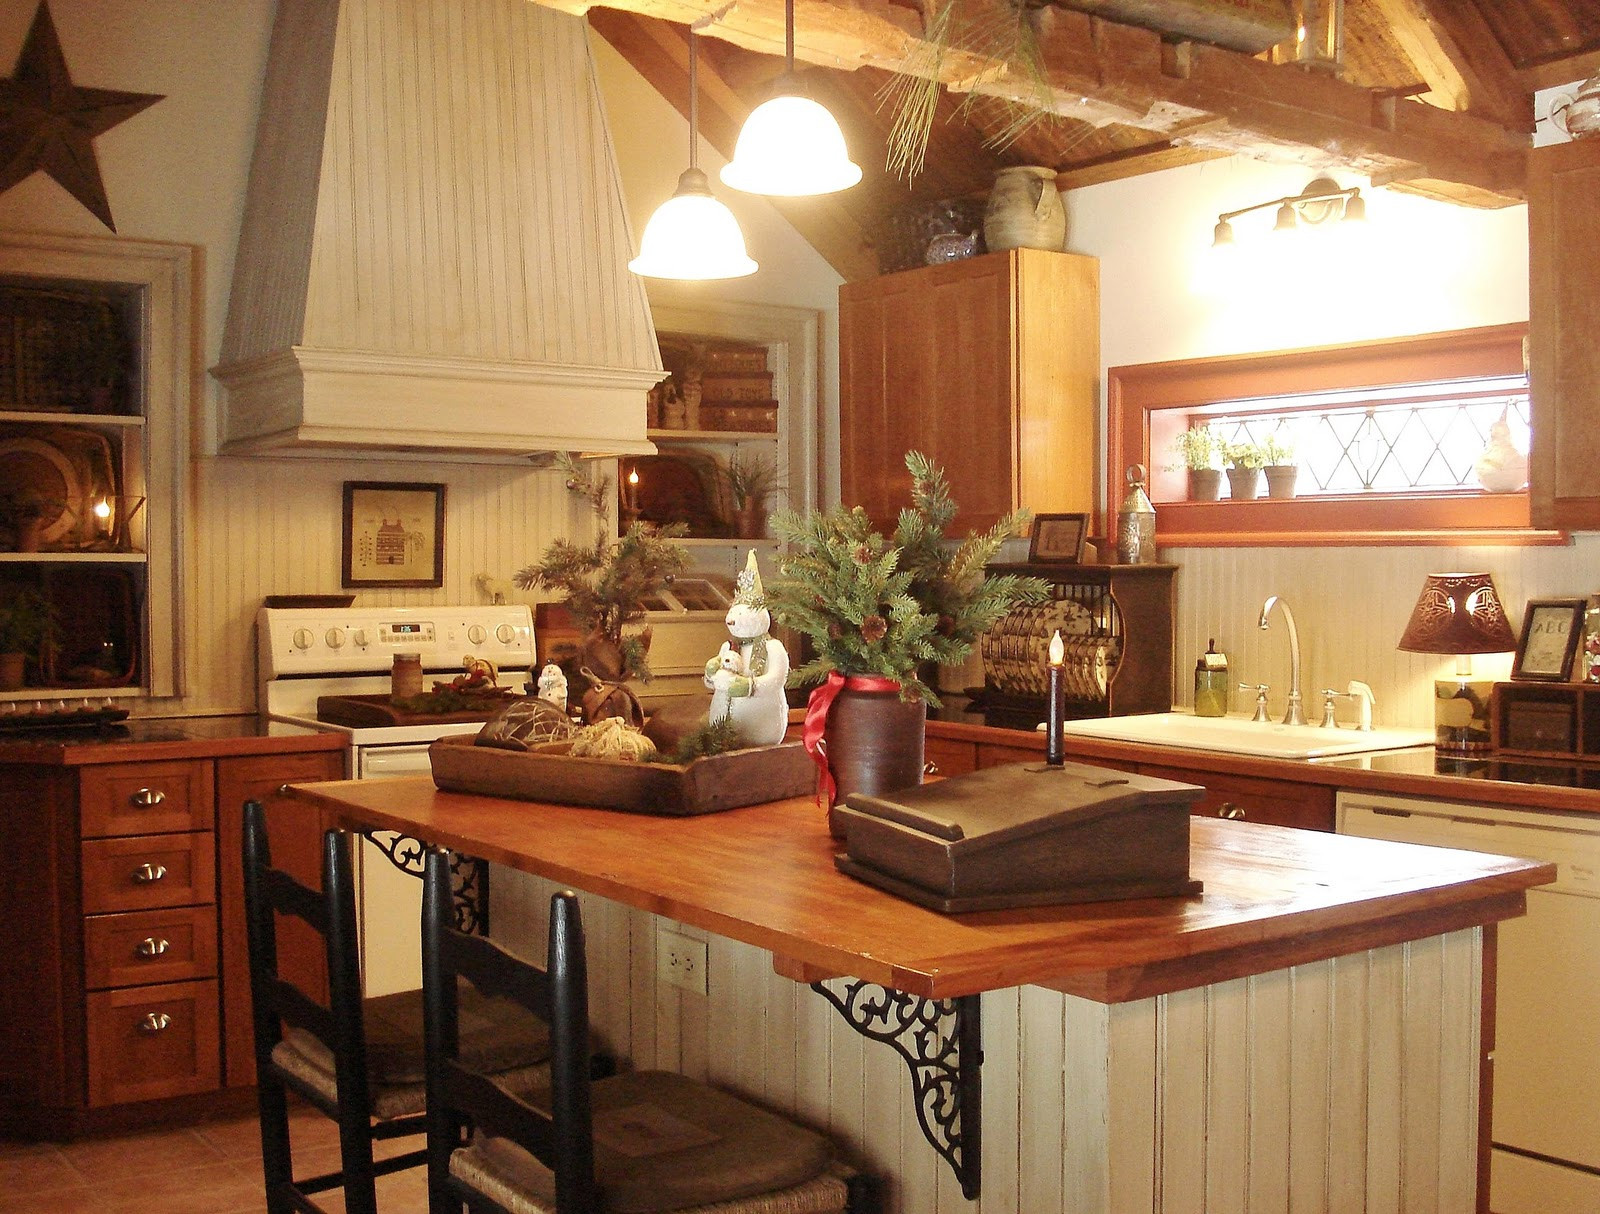 Best ideas about Kitchen Decorating Pinterest . Save or Pin A Primitive Place & Country Journal Magazine Holiday 2011 Now.